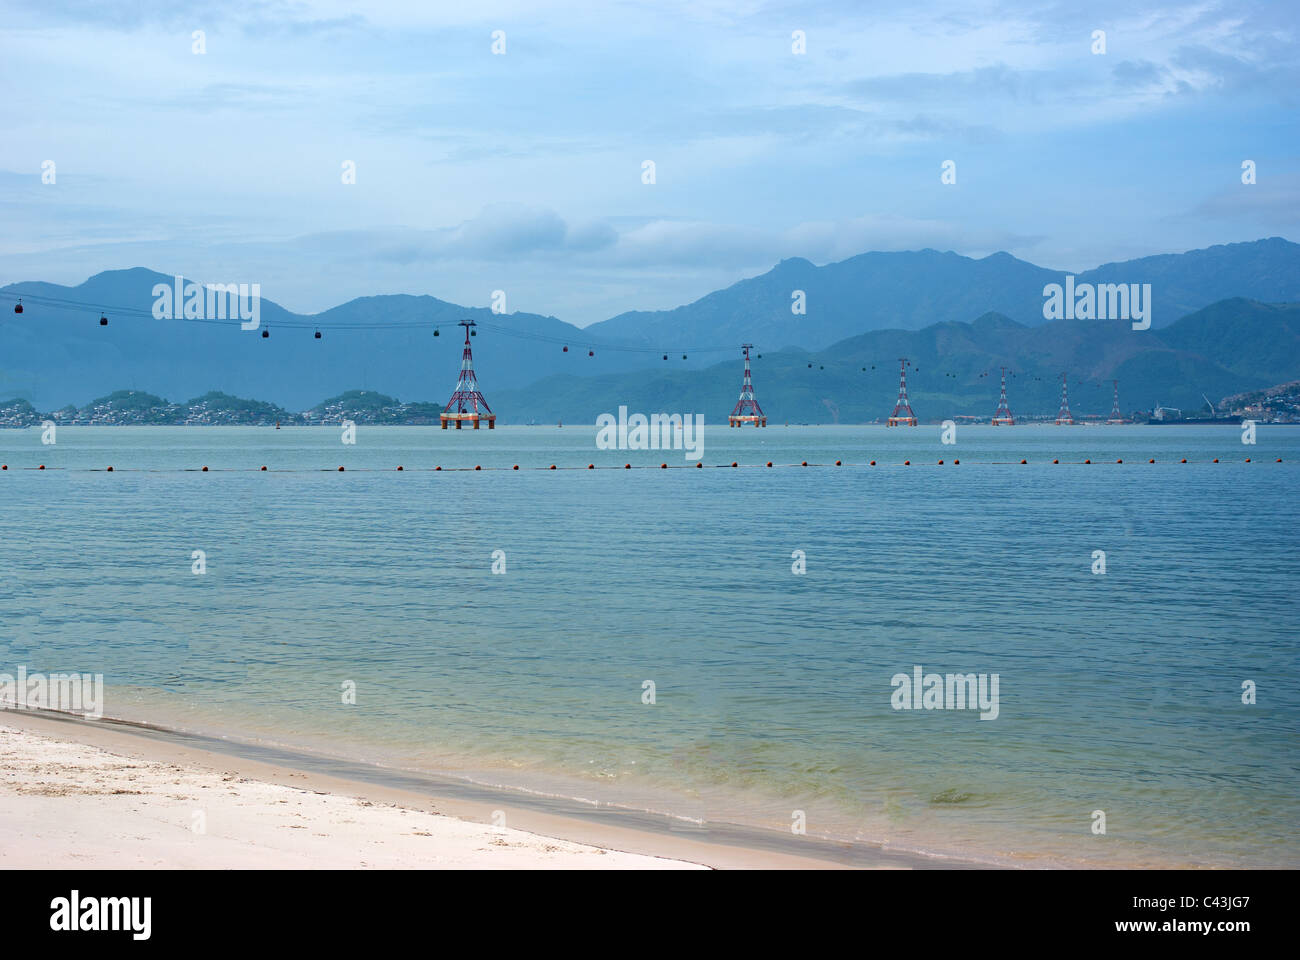 Cable car crossing the sea - Stock Image